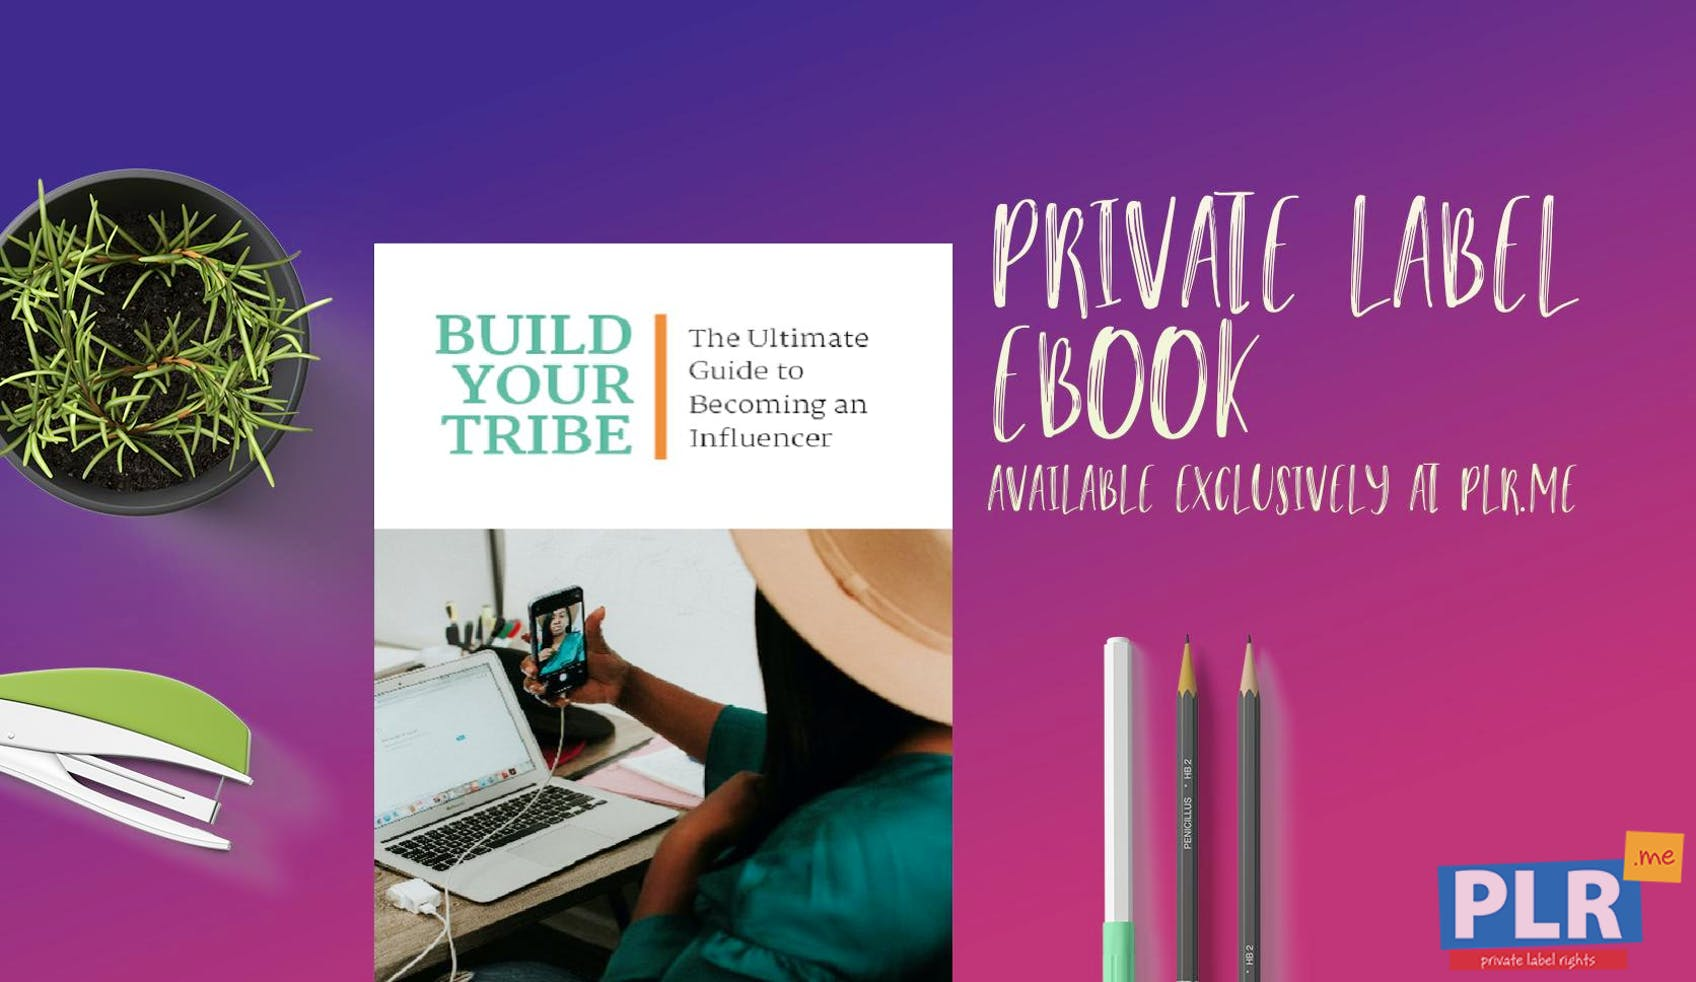 Build Your Tribe - The Ultimate Guide To Becoming An Influencer